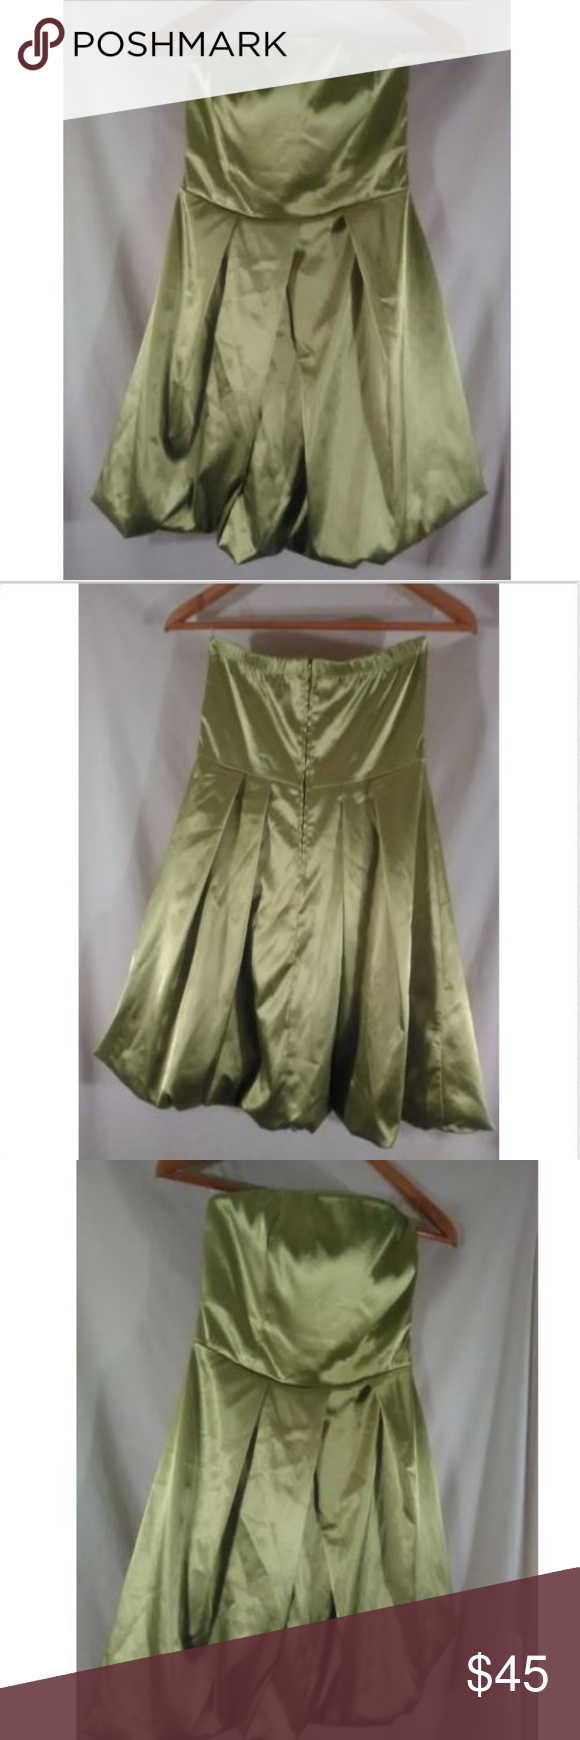 Studio y bright neon green party prom formal dance in my posh